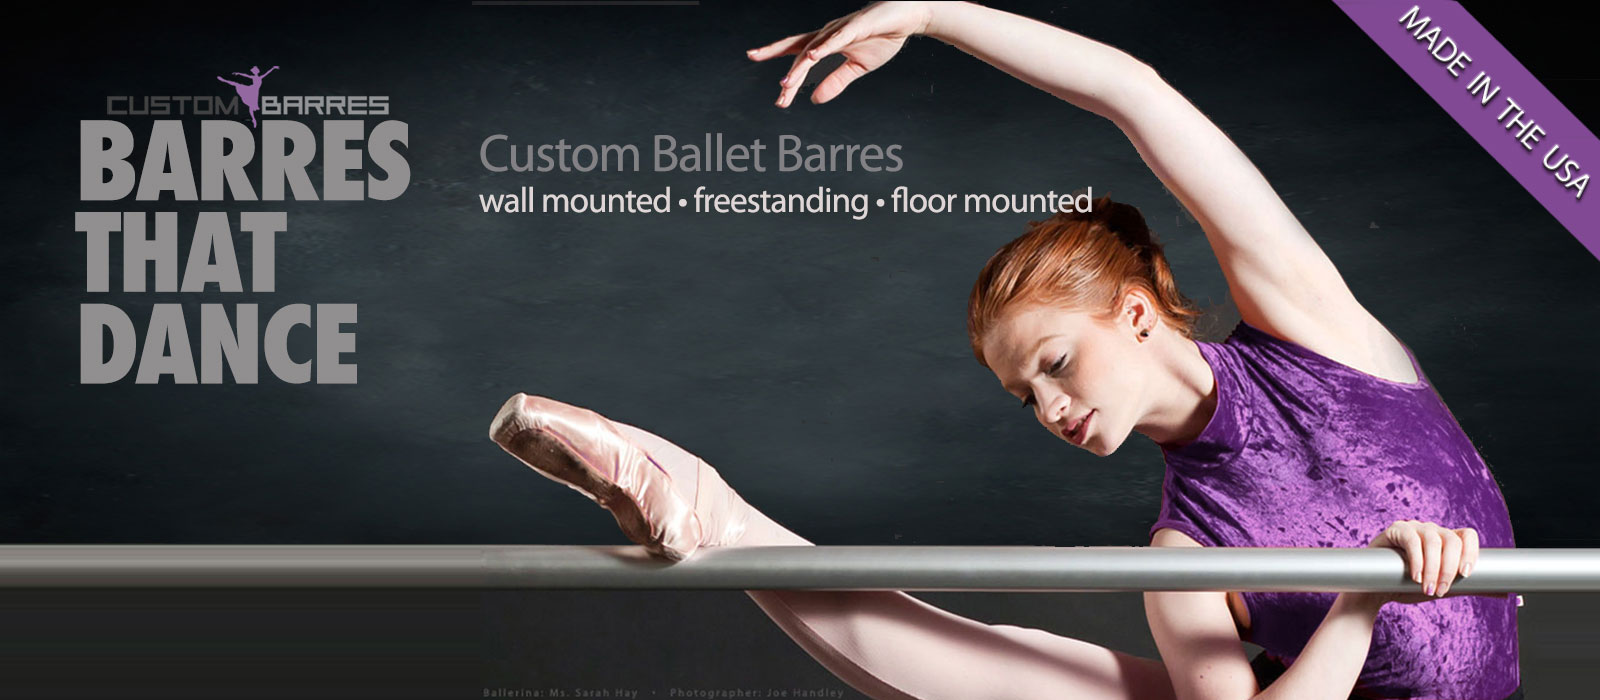 ballet barre, ballet barres, fitness barres, stretch barres